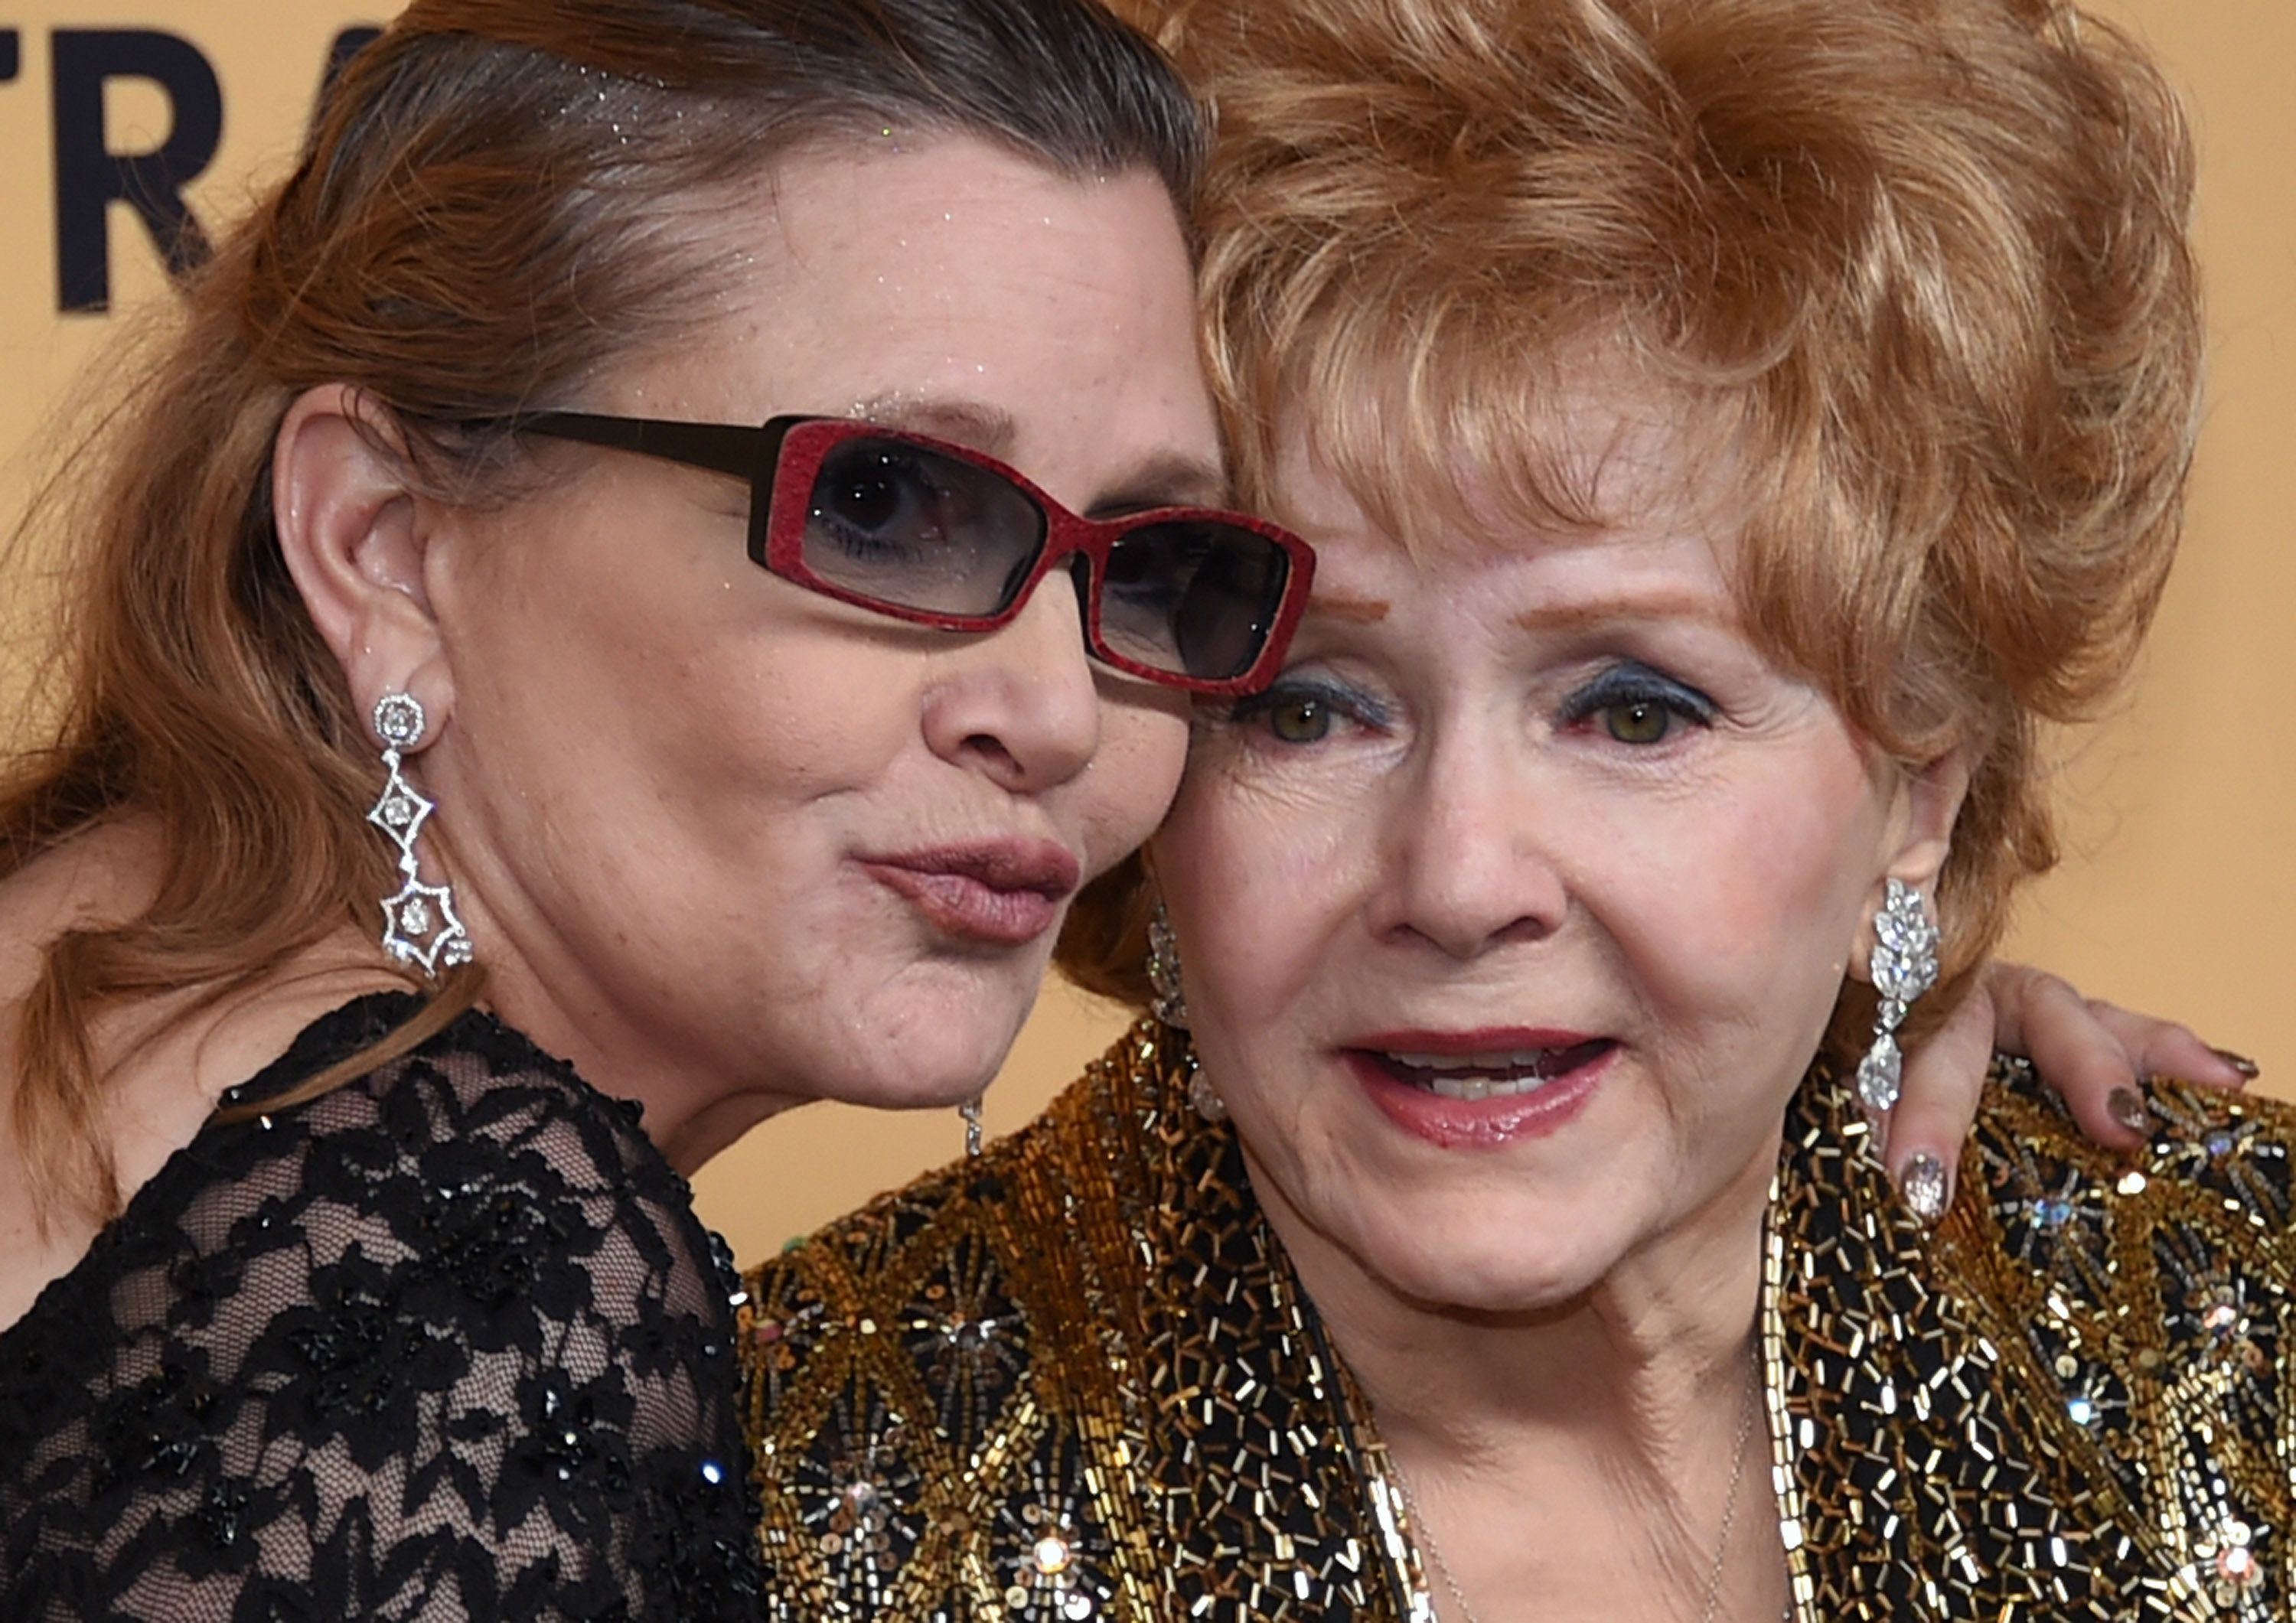 LOS ANGELES, CA - JANUARY 25:  Actresses Debbie Reynolds (R), recipient of the Screen Actors Guild Life Achievement Award, and her daughter Carrie Fisher pose in the press room during the 21st Annual Screen Actors Guild Awards at The Shrine Auditorium on January 25, 2015 in Los Angeles, California.  (Photo by Ethan Miller/Getty Images)